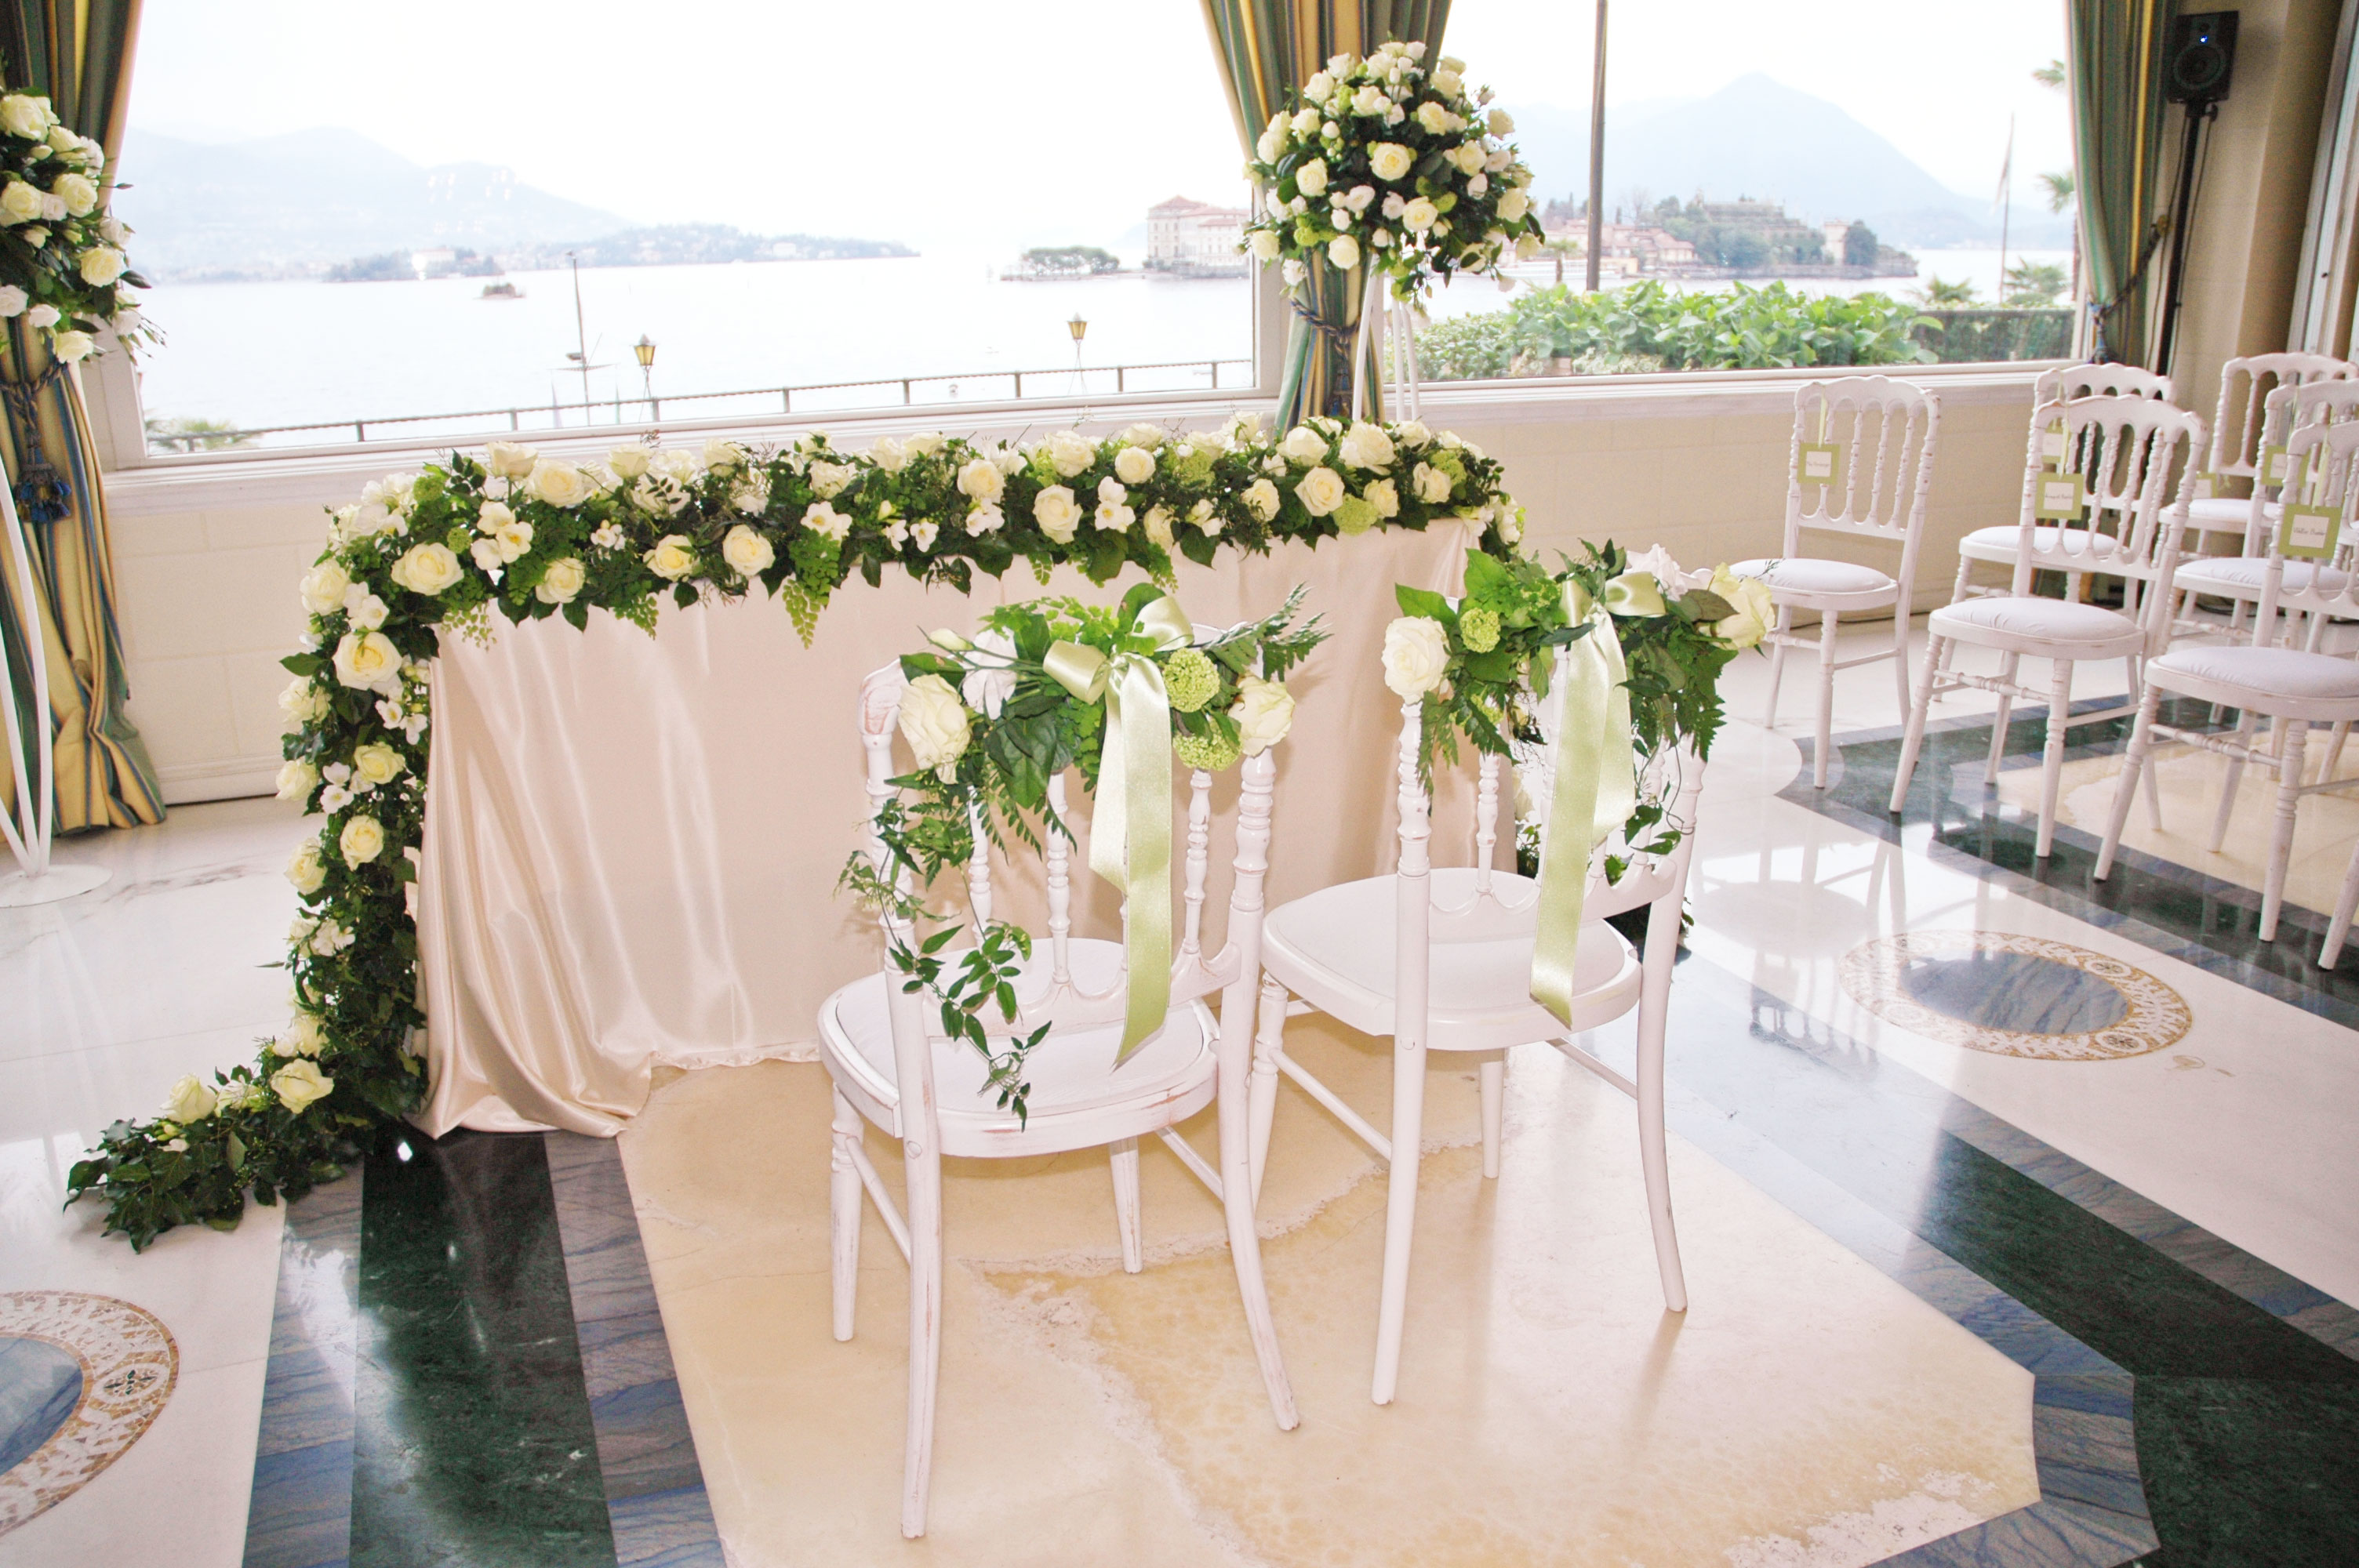 Civil Wedding Decoration Ideas: Floral Decorations For Civil Weddings On Lake Maggiore, Italy